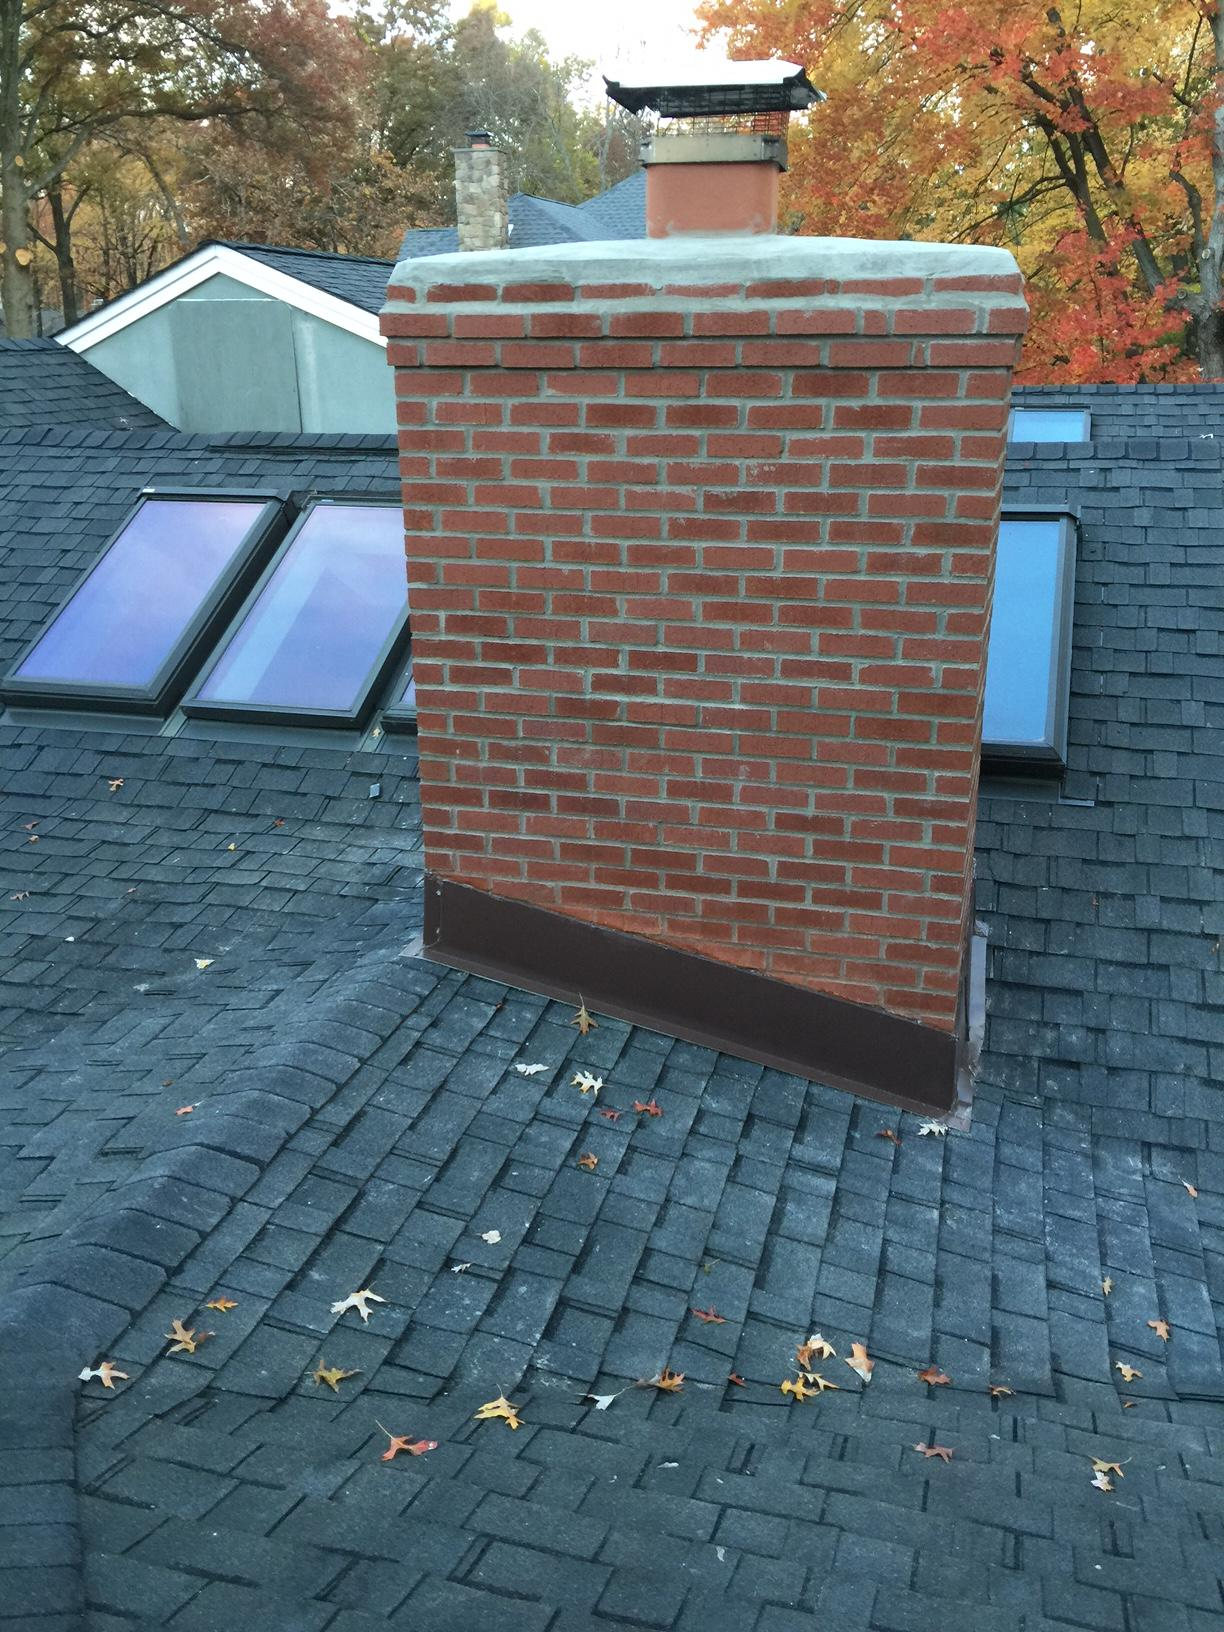 Excellent Flat Roofing At 84 Jewell Street, Garfield, Nj